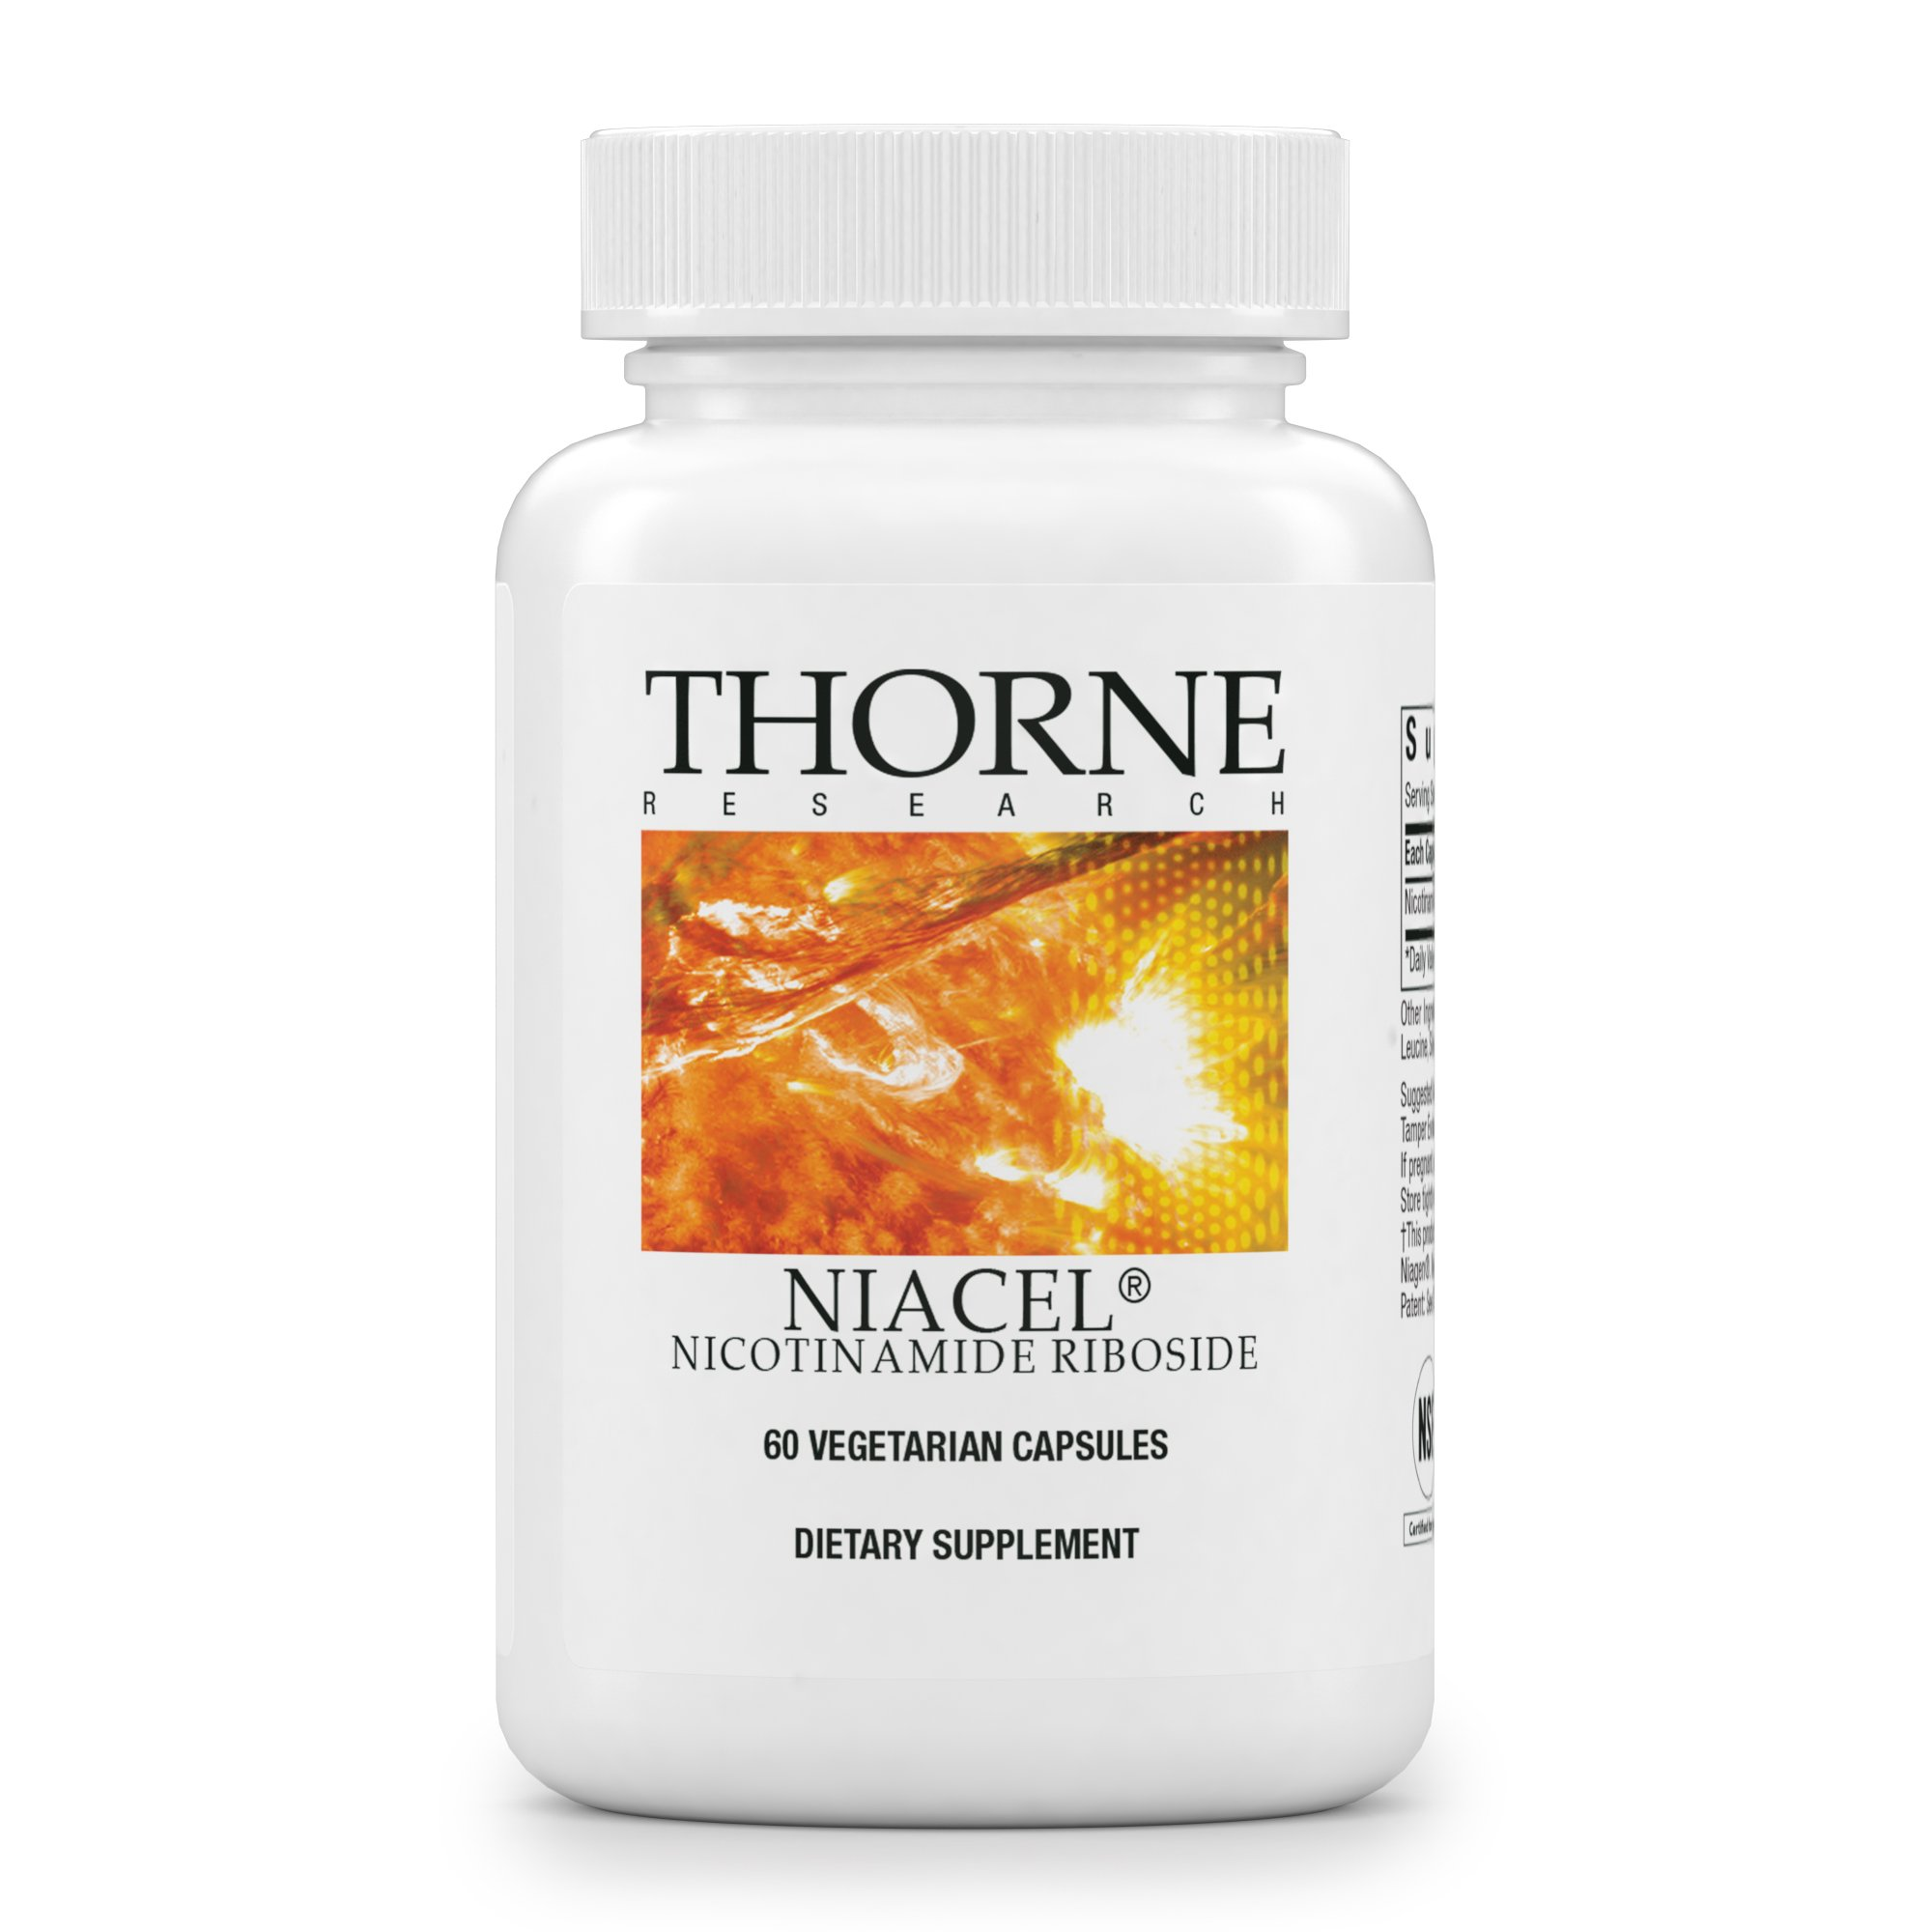 Thorne Research - NiaCel - Nicotinamide Riboside Supplement with ChromaDex Niagen - NSF Certified for Sport - 60 Capsules